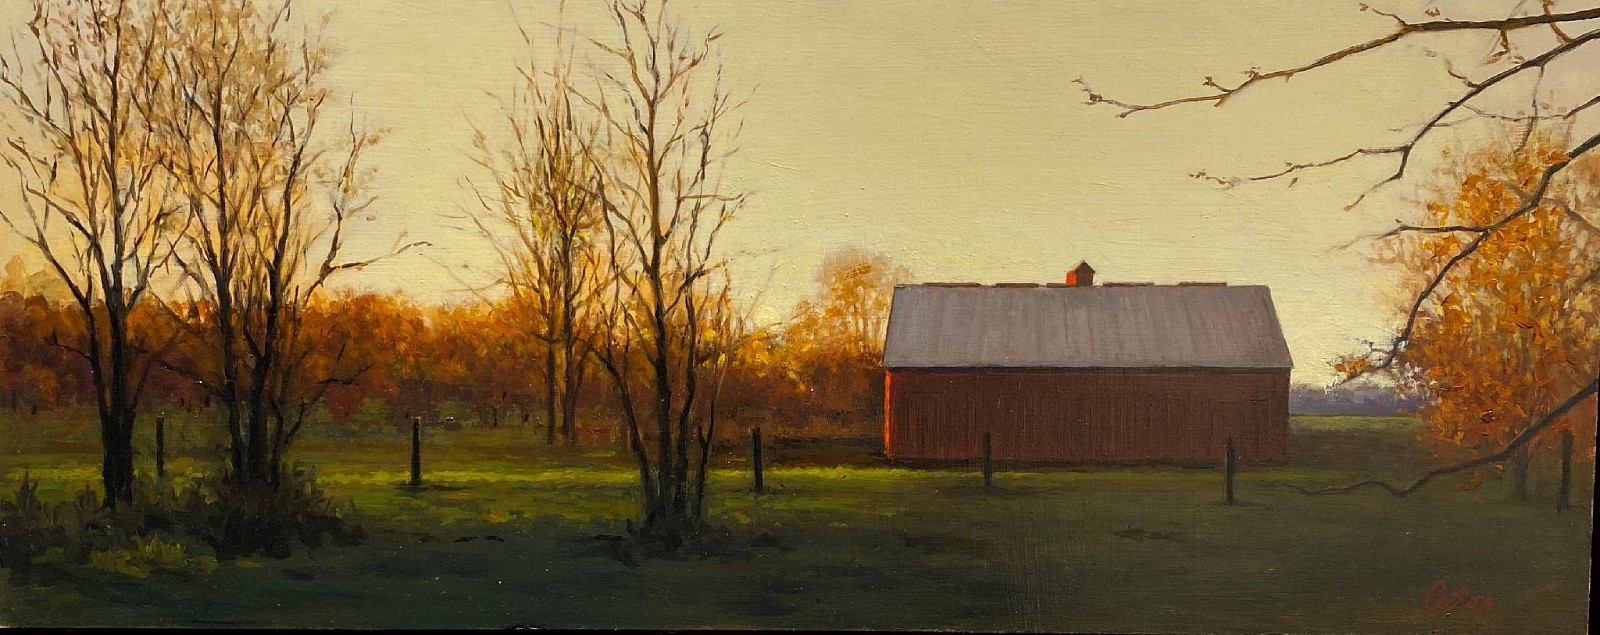 David Peikon ,   Last Light Country Road  ,  2019     oil on panel ,  9 x 24 in. (22.9 x 61 cm)     DP191104